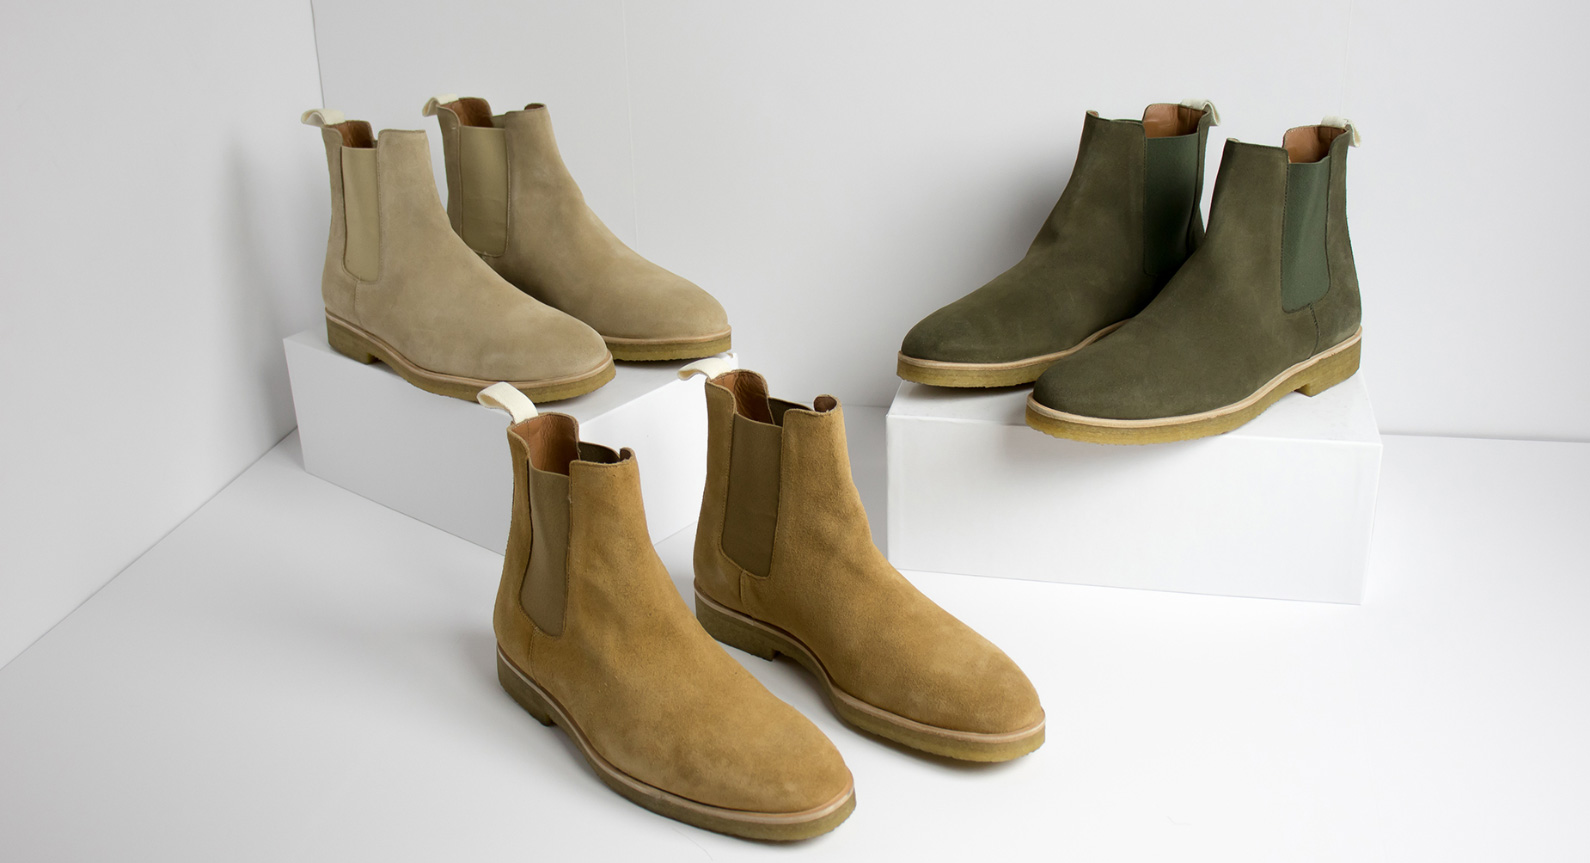 Introducing The Oliver Cabell Chelsea Boot